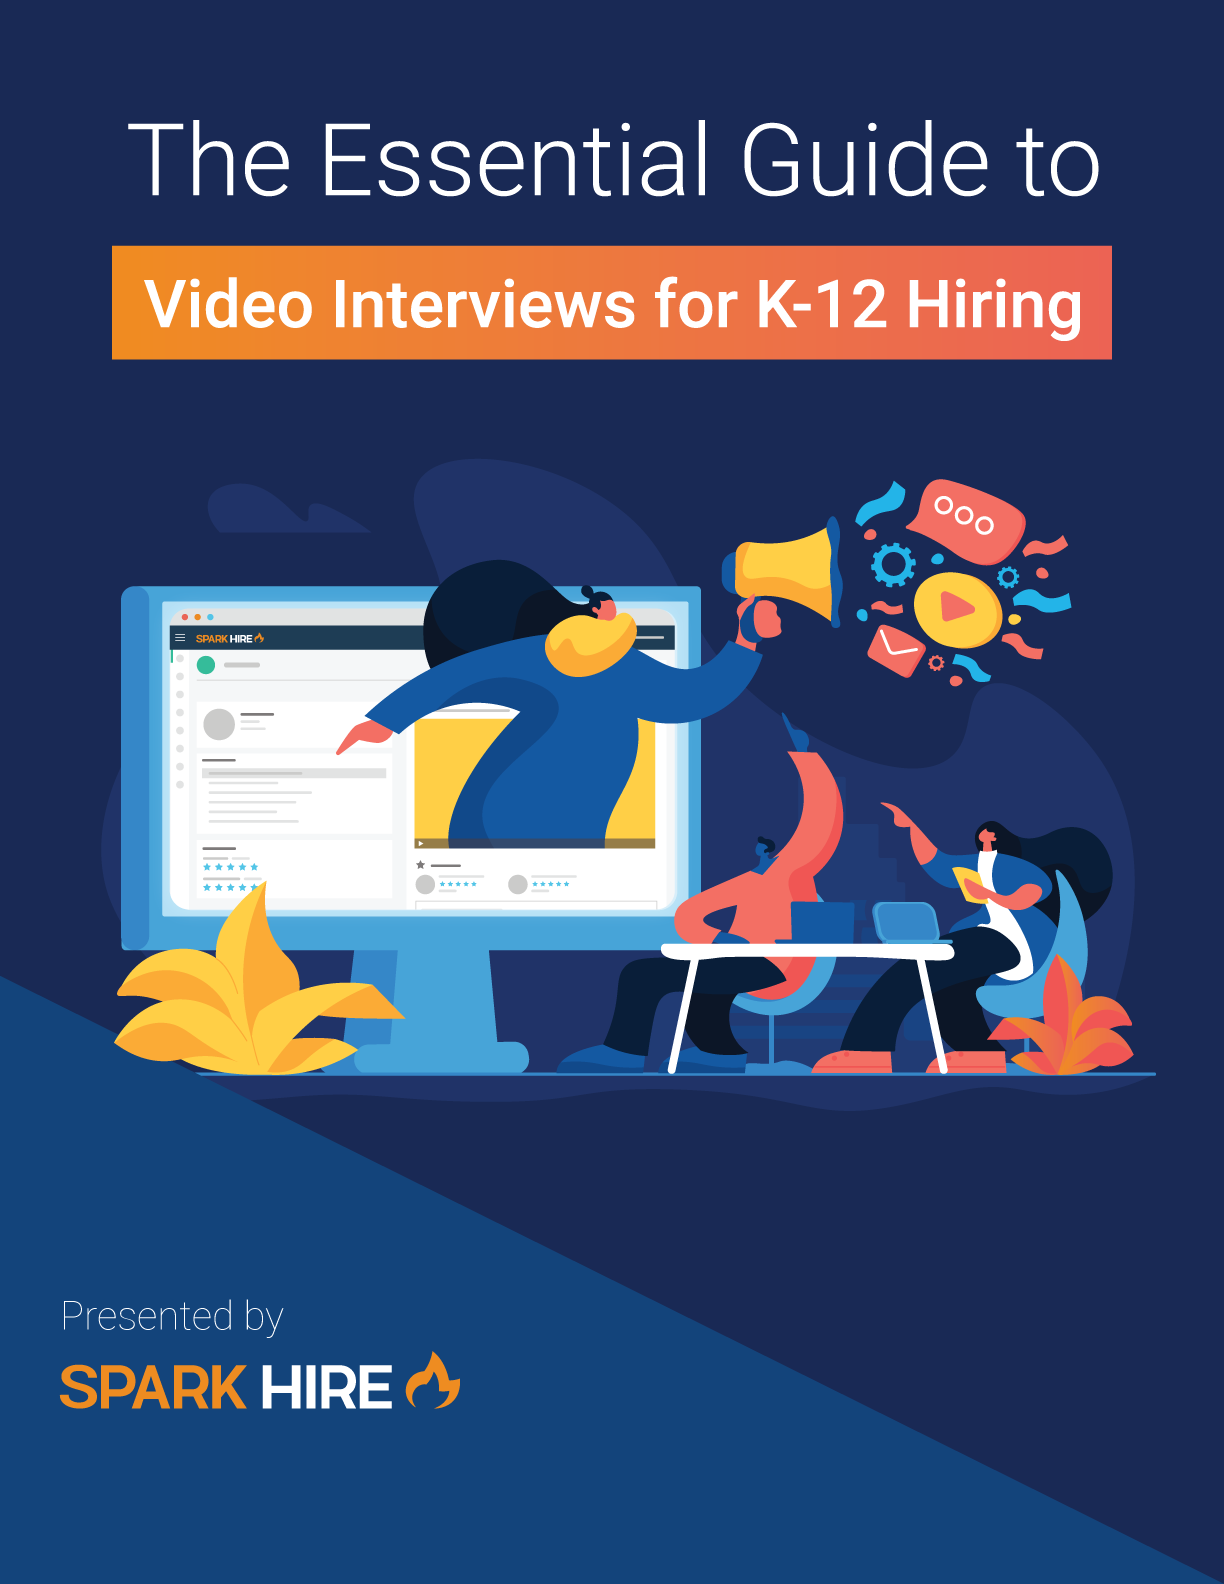 The Essential Guide to Video Interviews for K-12 Hiring